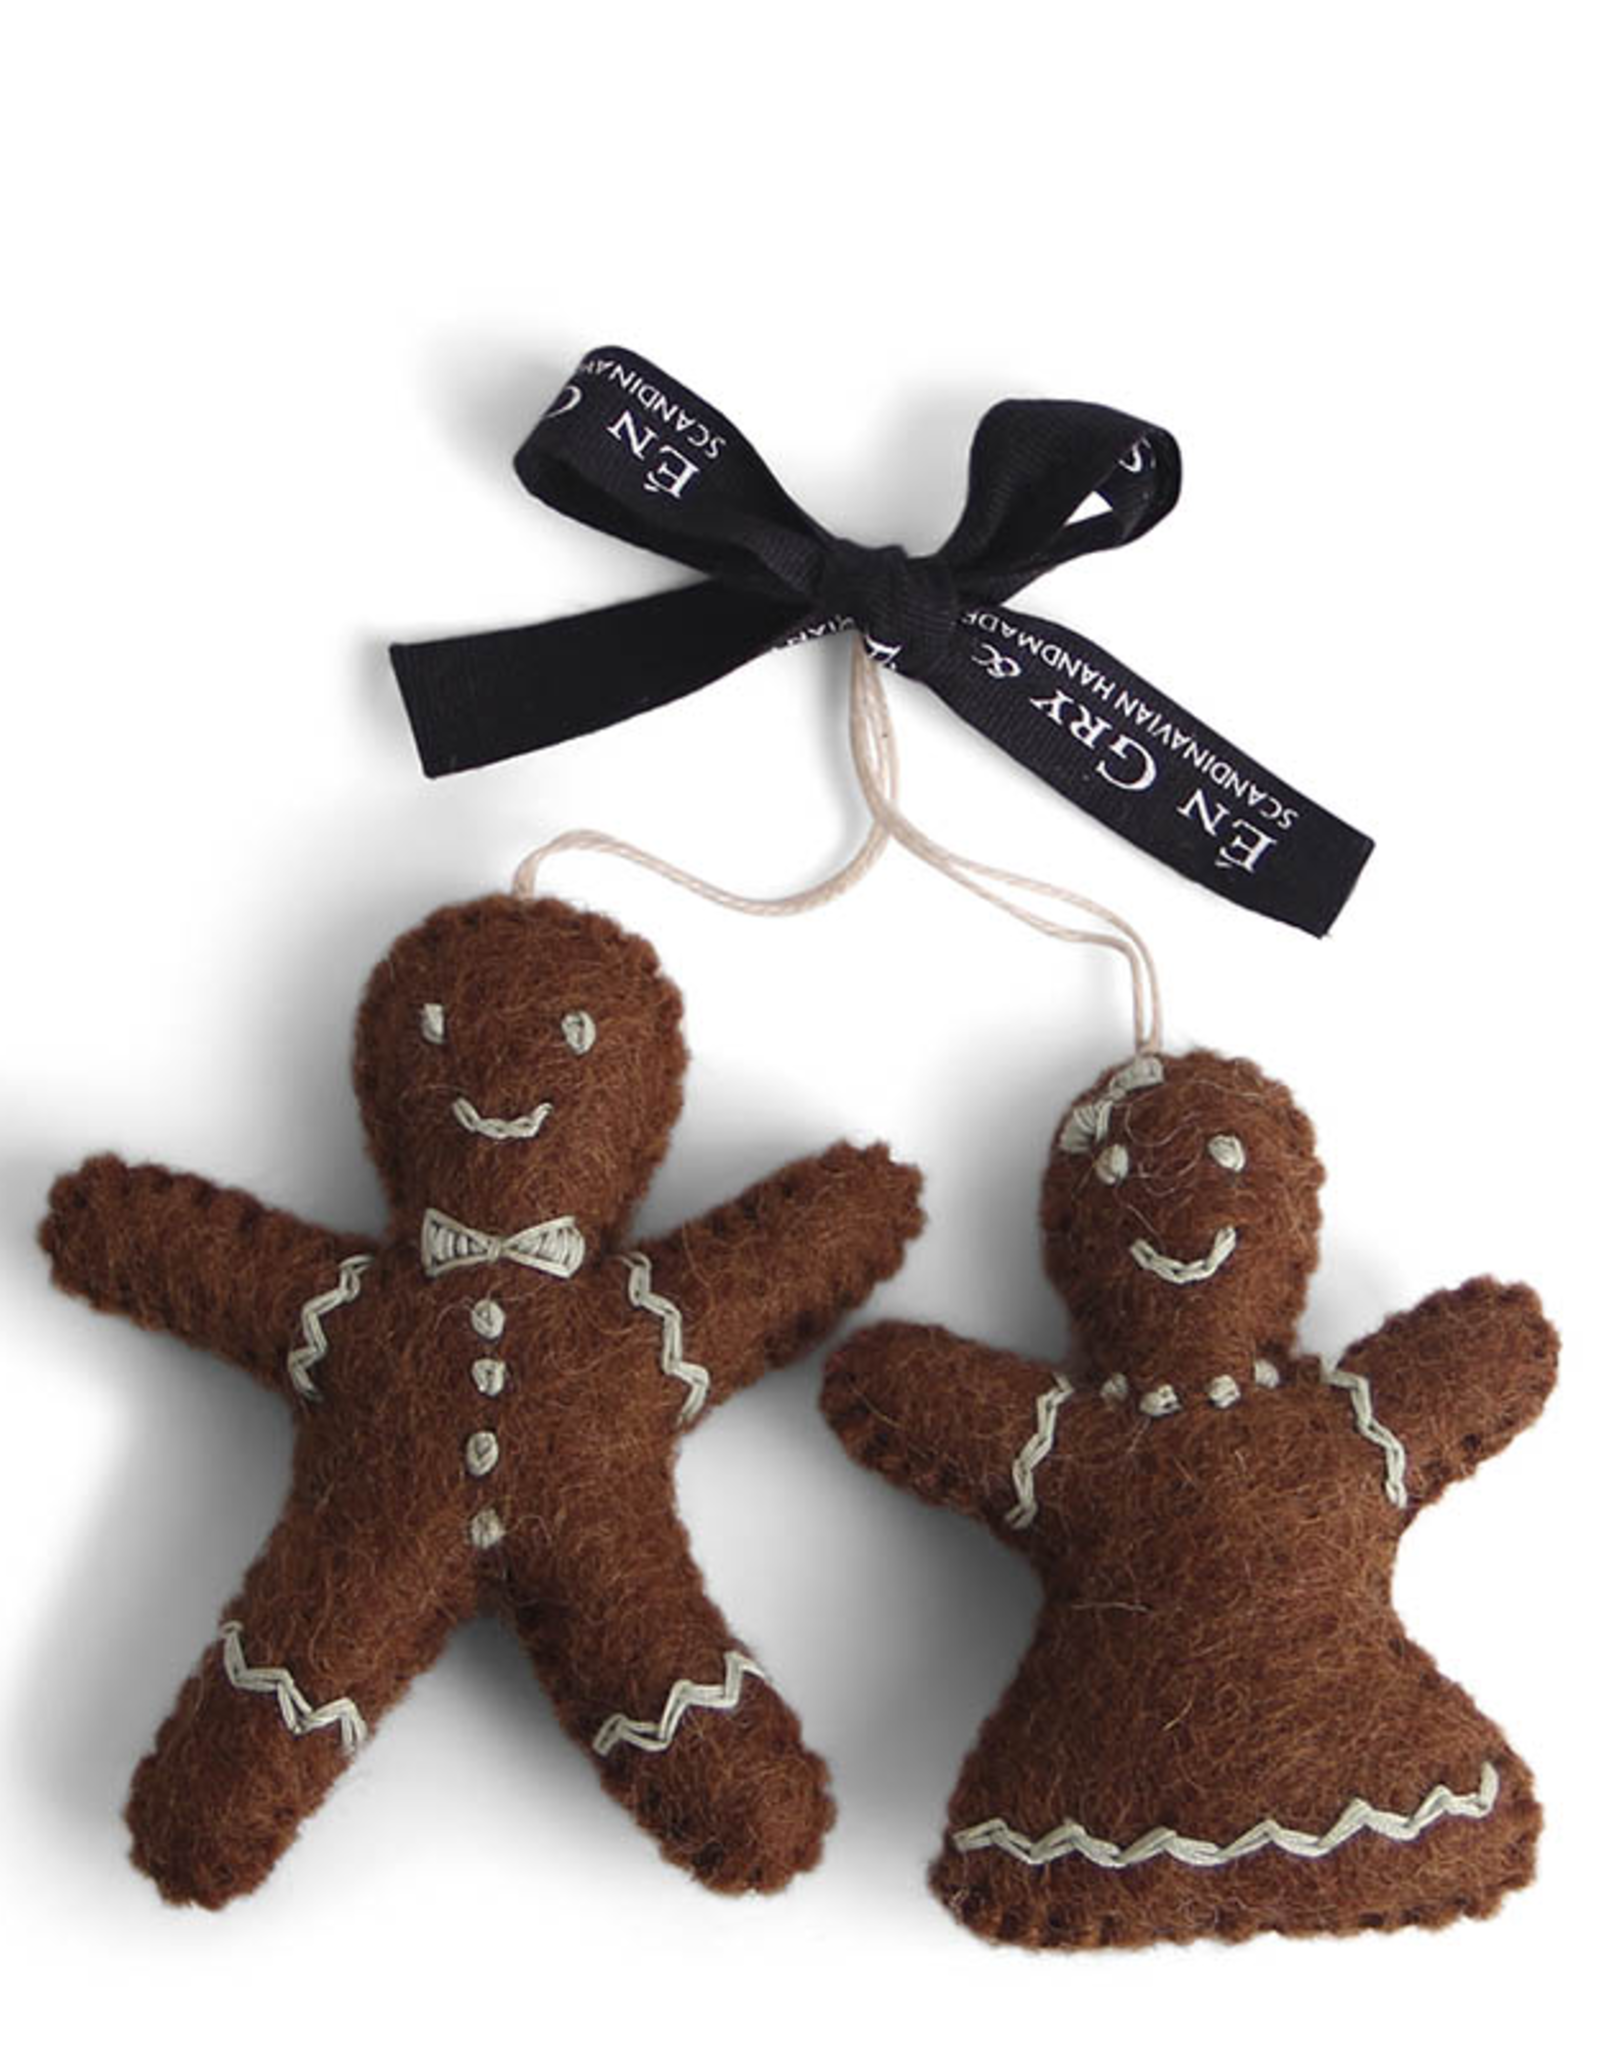 EGS EGS Gingerbread Man And Woman Ornaments